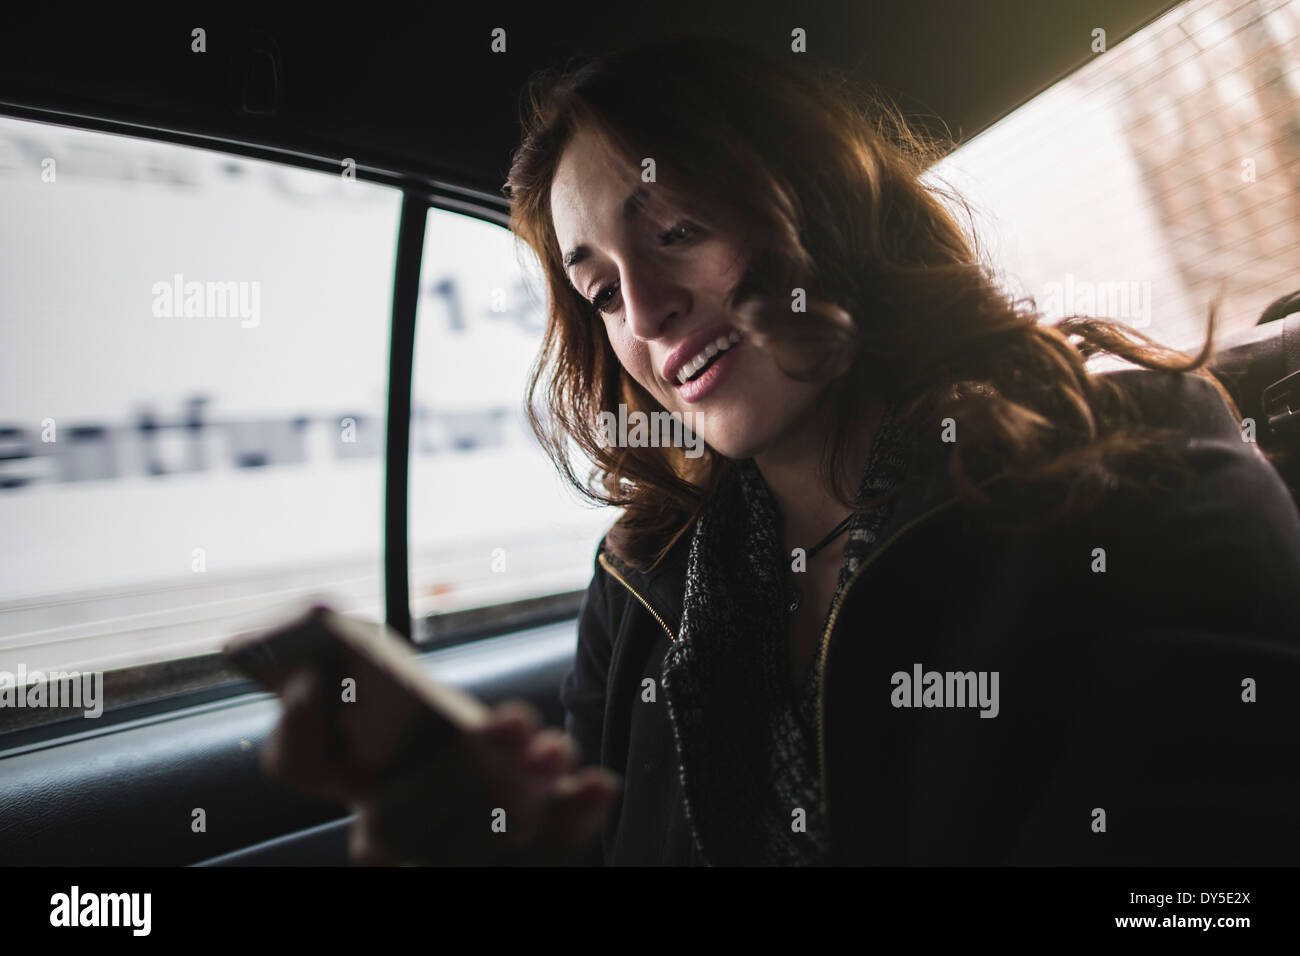 Young woman looking at cellphone in taxi - Stock Image